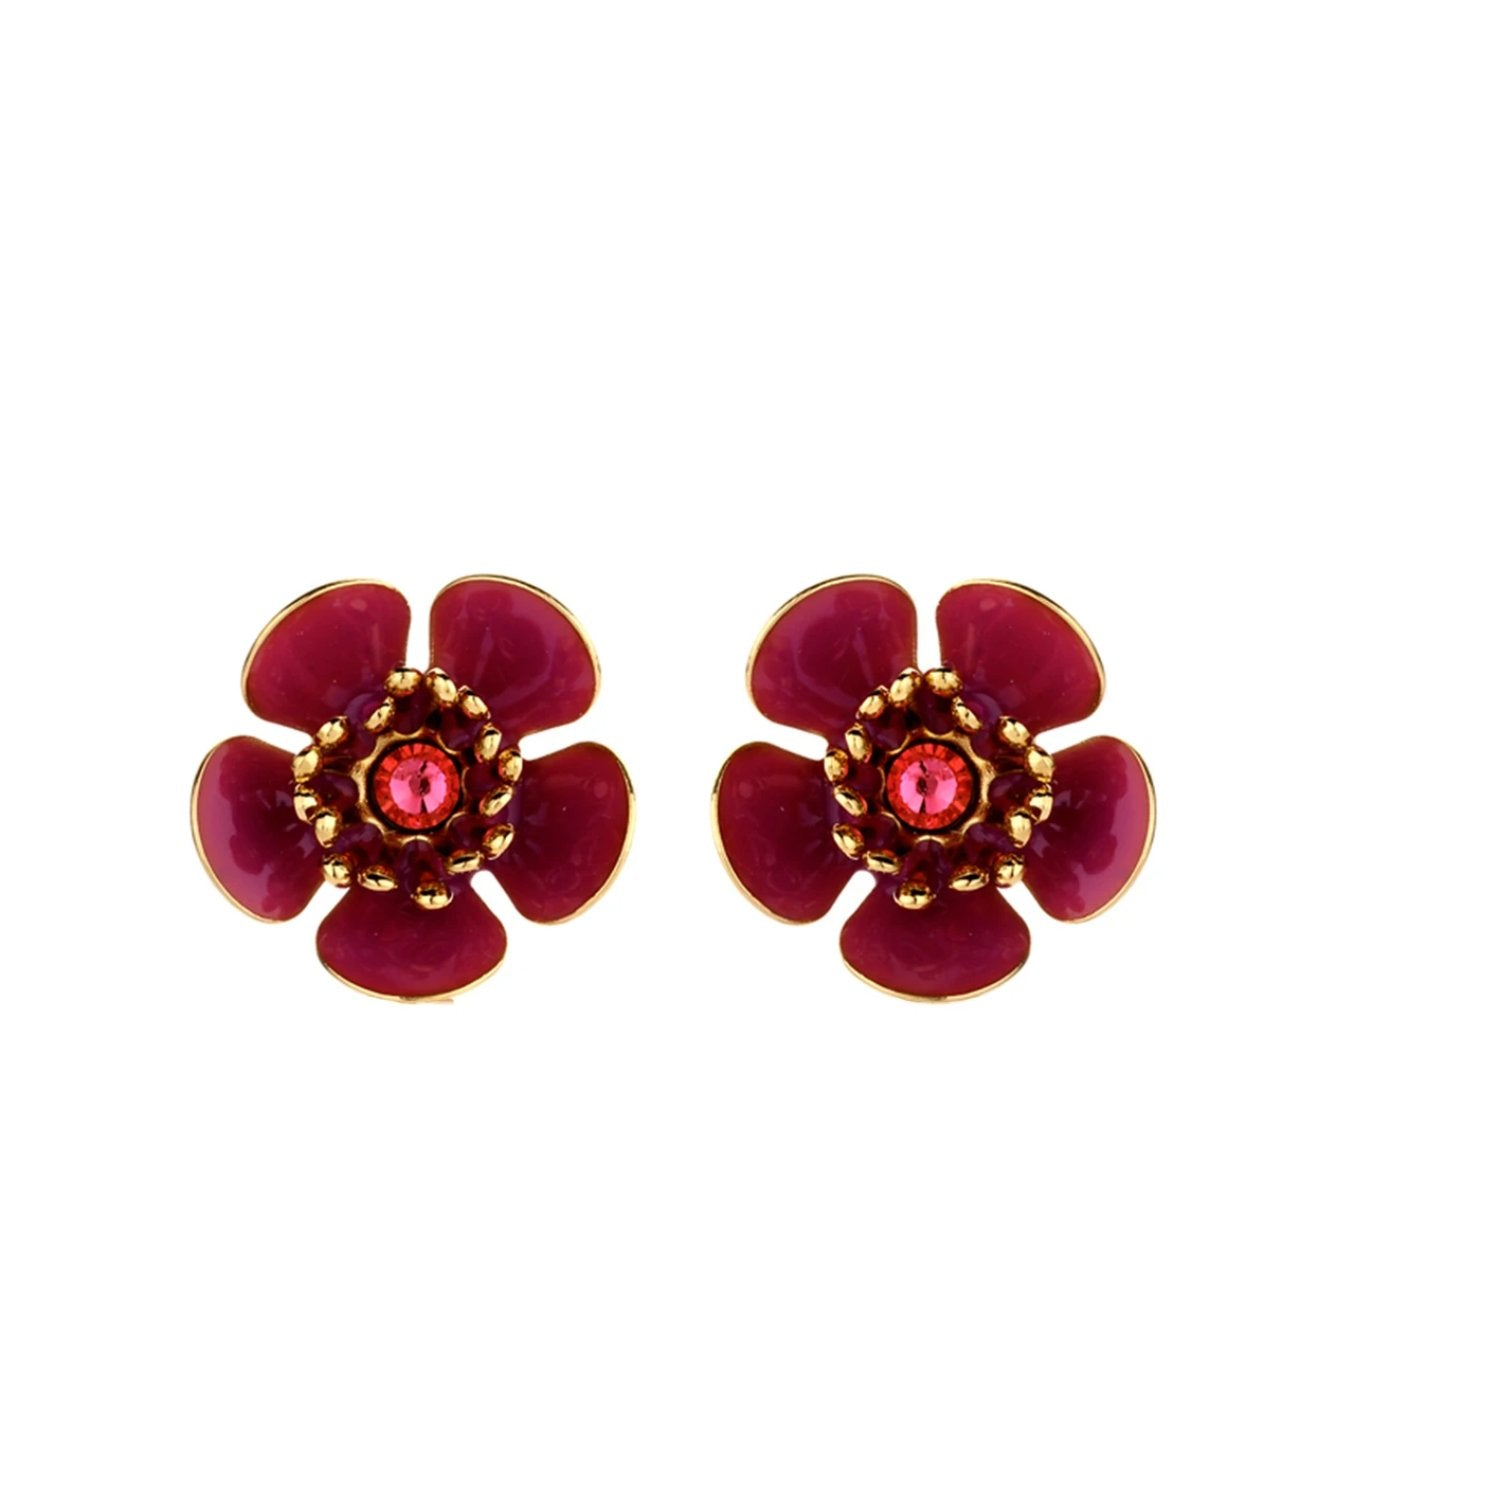 Gina mini enamel flower fraise earrings - Souvenirs de Pomme